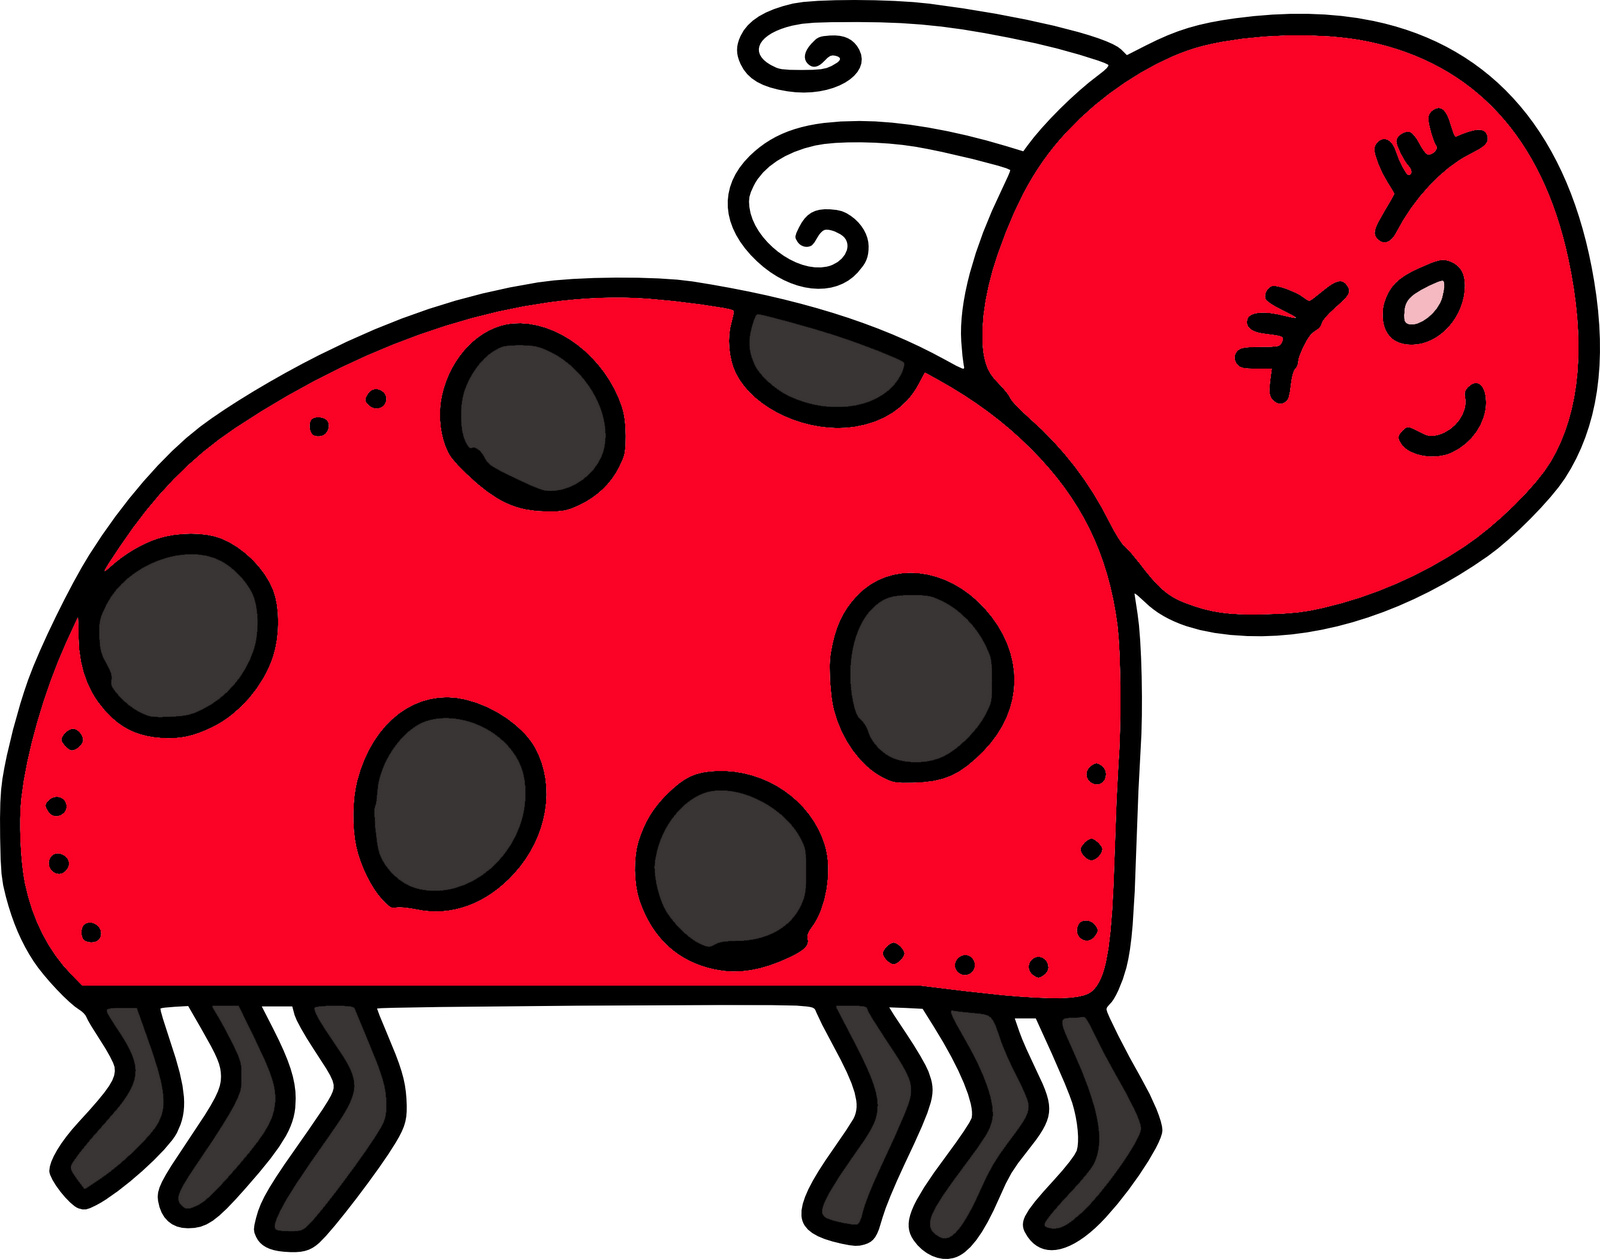 Bug clip art borders. Insects clipart face